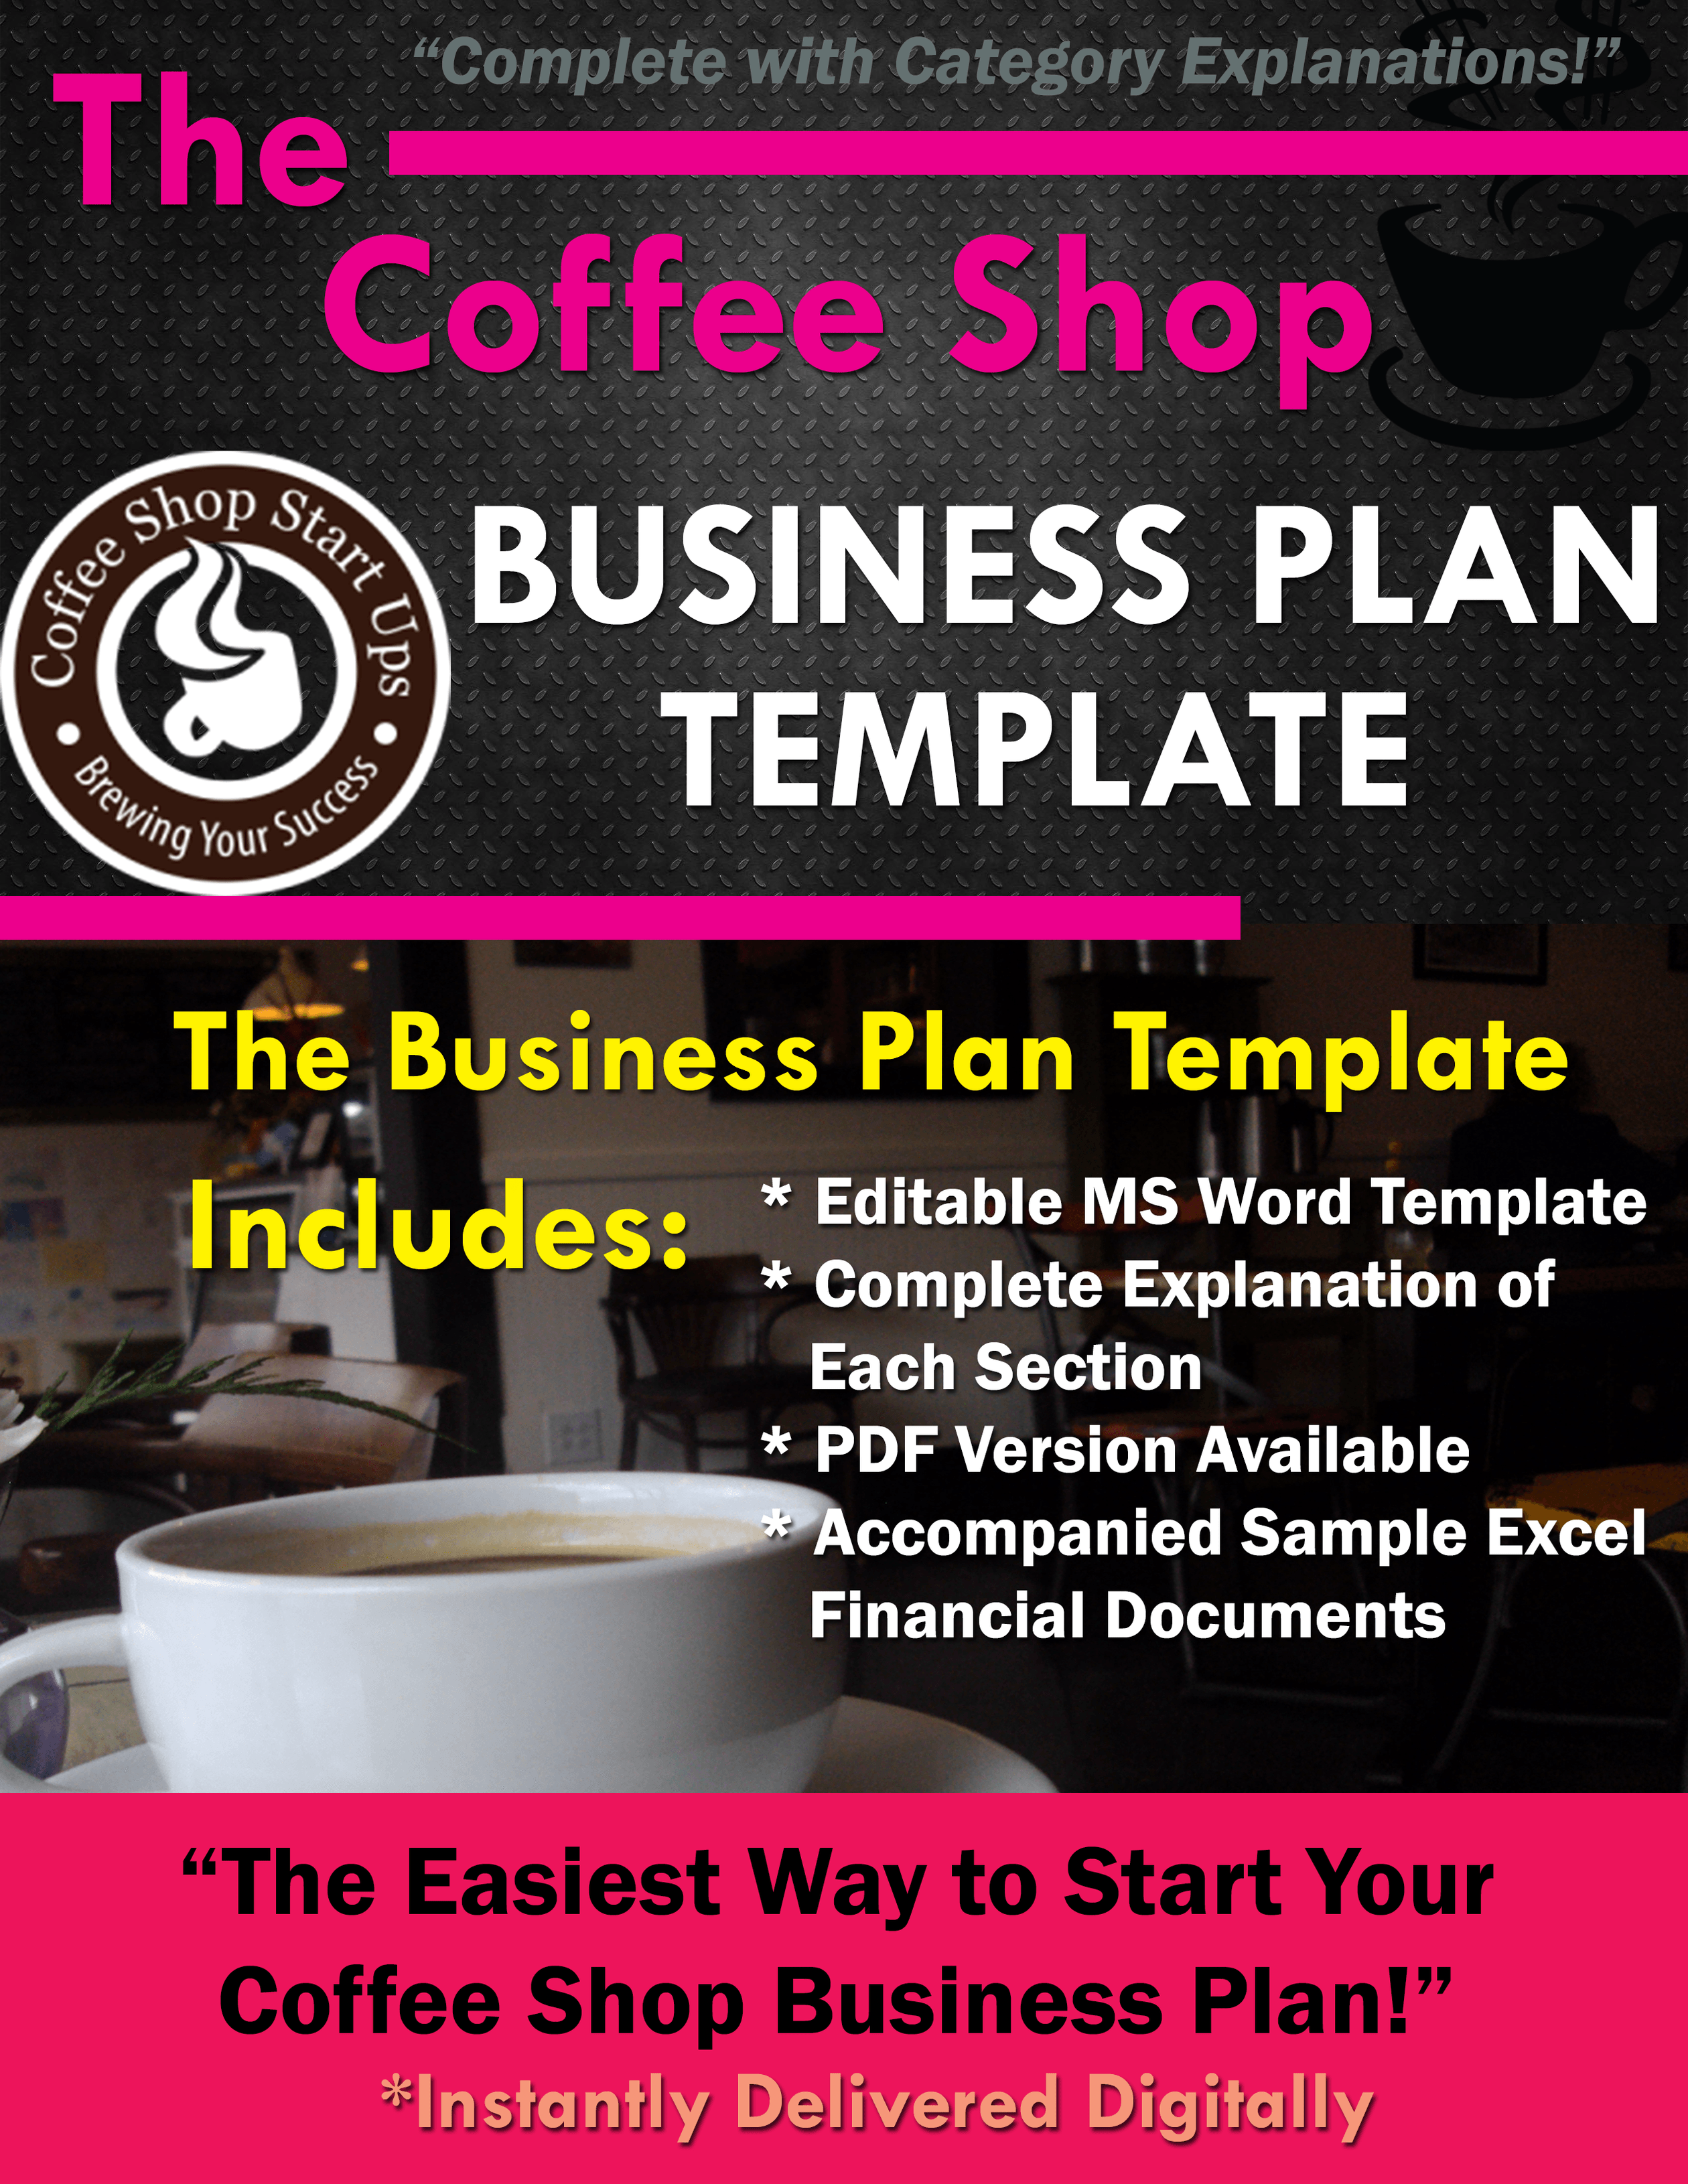 Coffee Shop Business Plan Write Your Business Plan For Your Coffee Shop Starting A Coffee Shop Coffee Shop Business Coffee Shop Business Plan